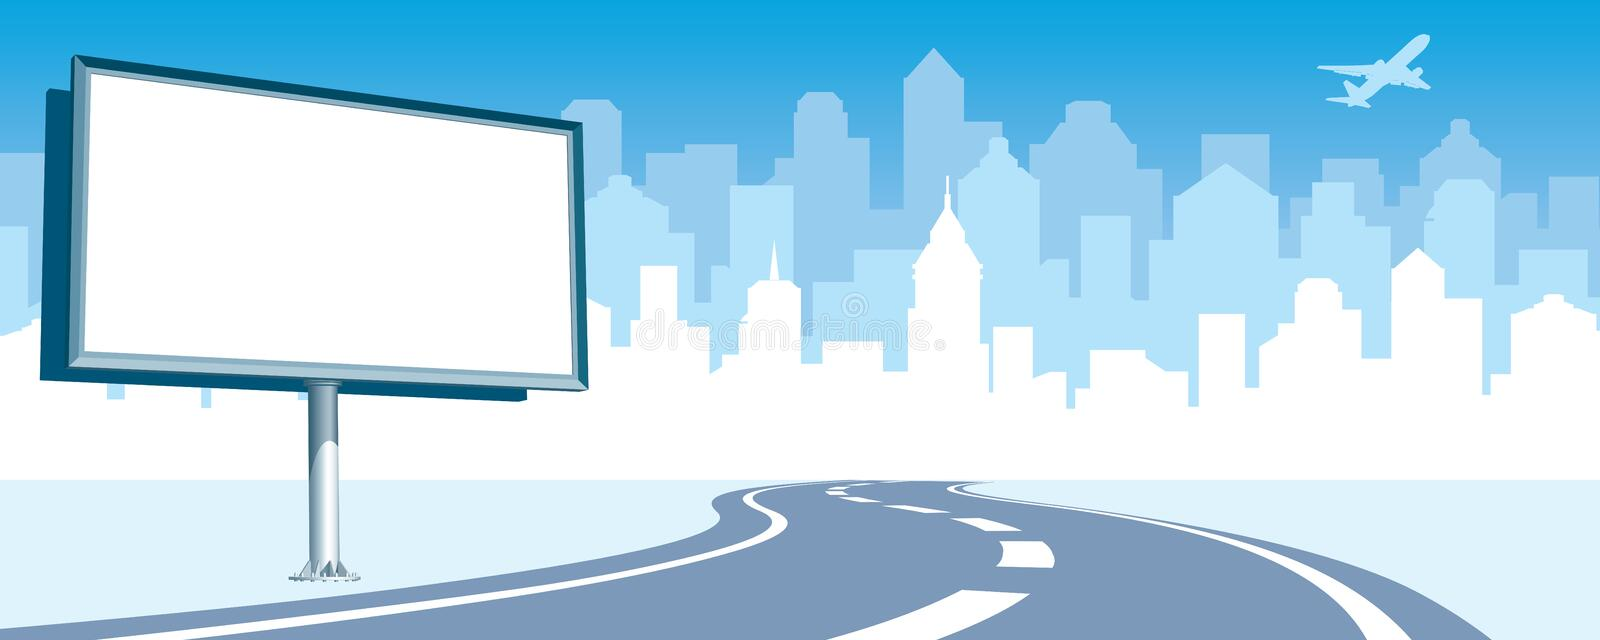 Road billboard royalty free illustration